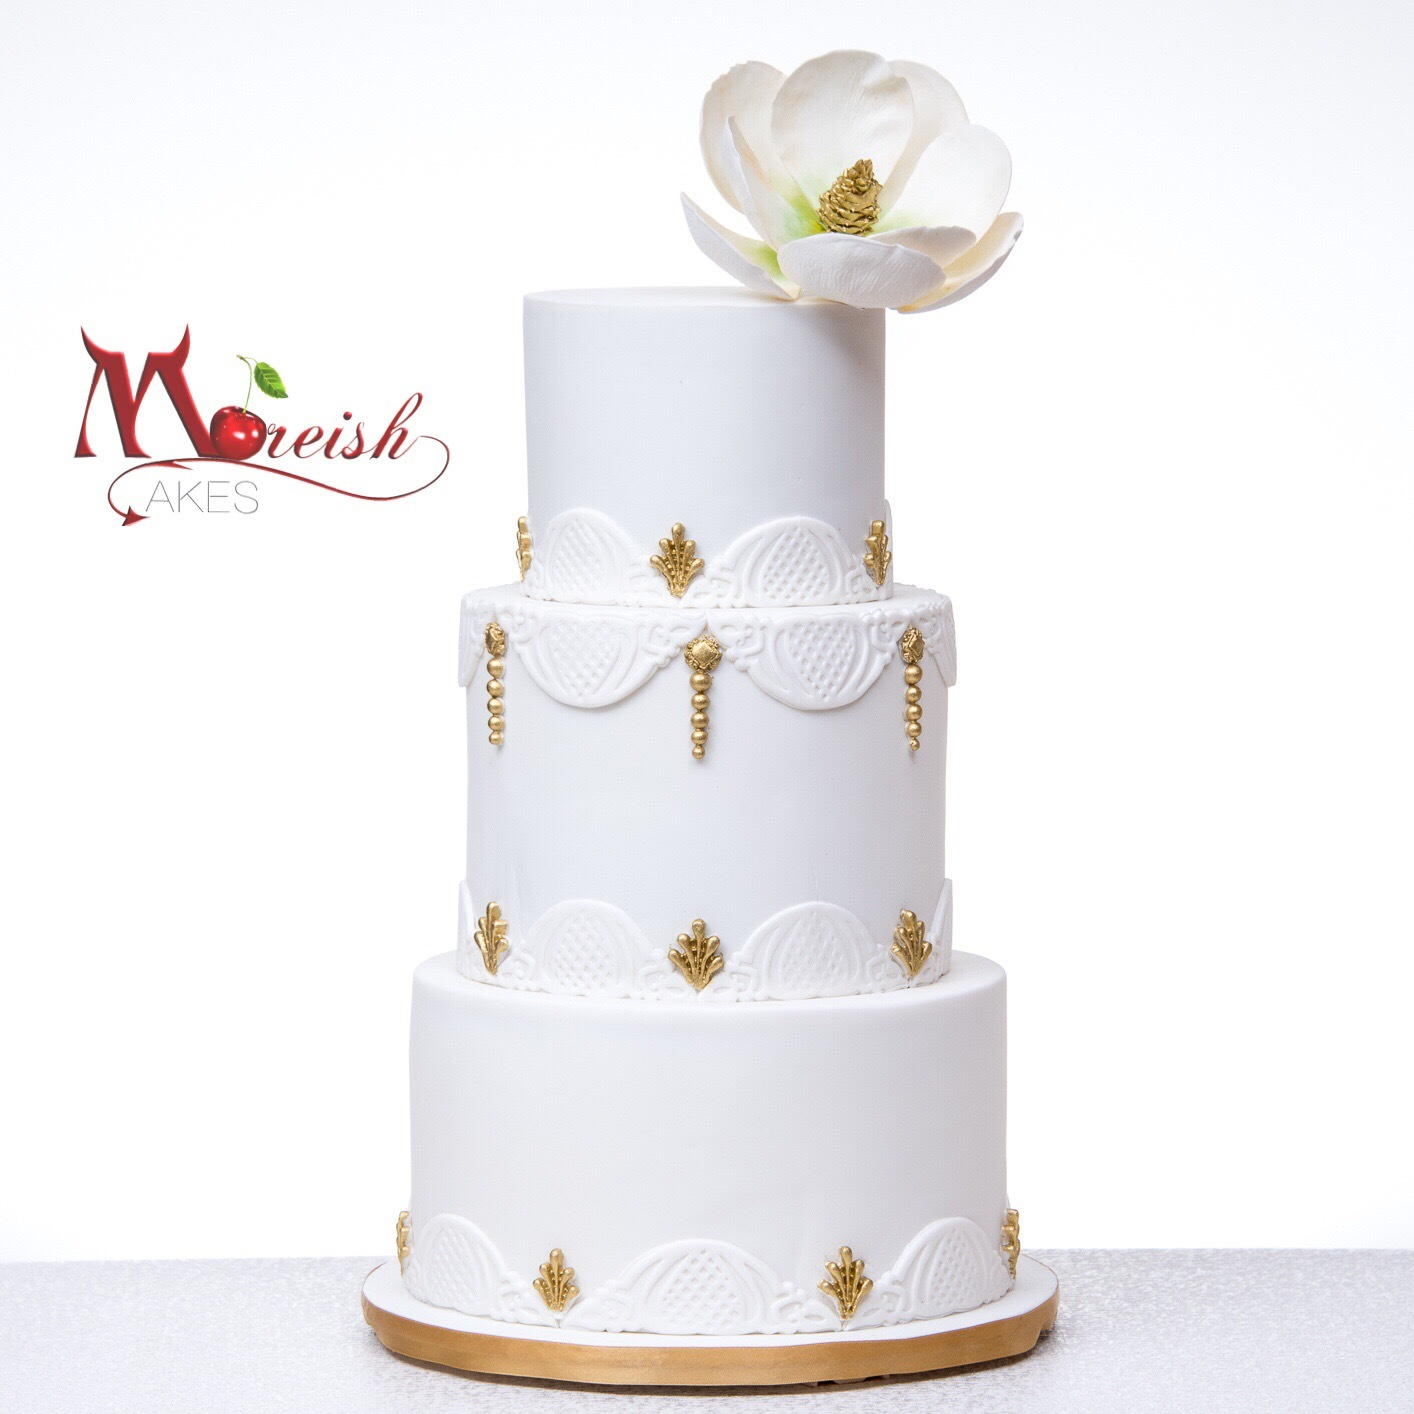 White with gold trim wedding